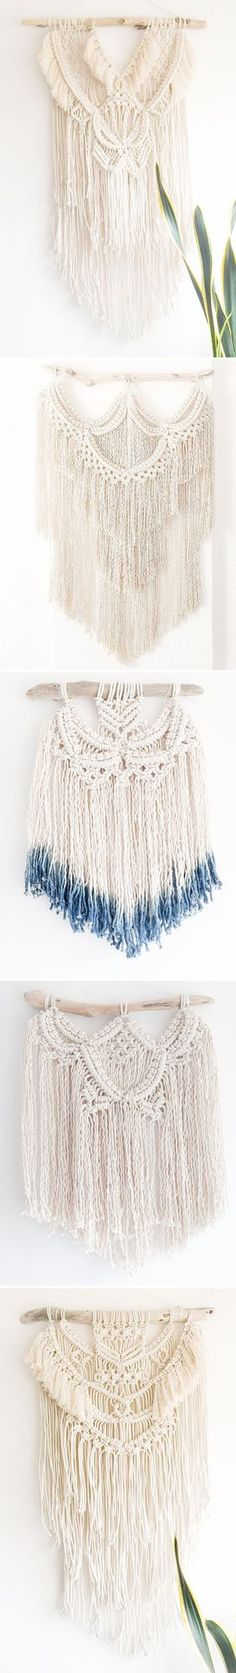 Holy macrame! Ok, my love for macrame might be dating me, but these gorgeous modernized wall hangings {does that make me sound younger?} are the beautiful, handcrafted work of California based artist